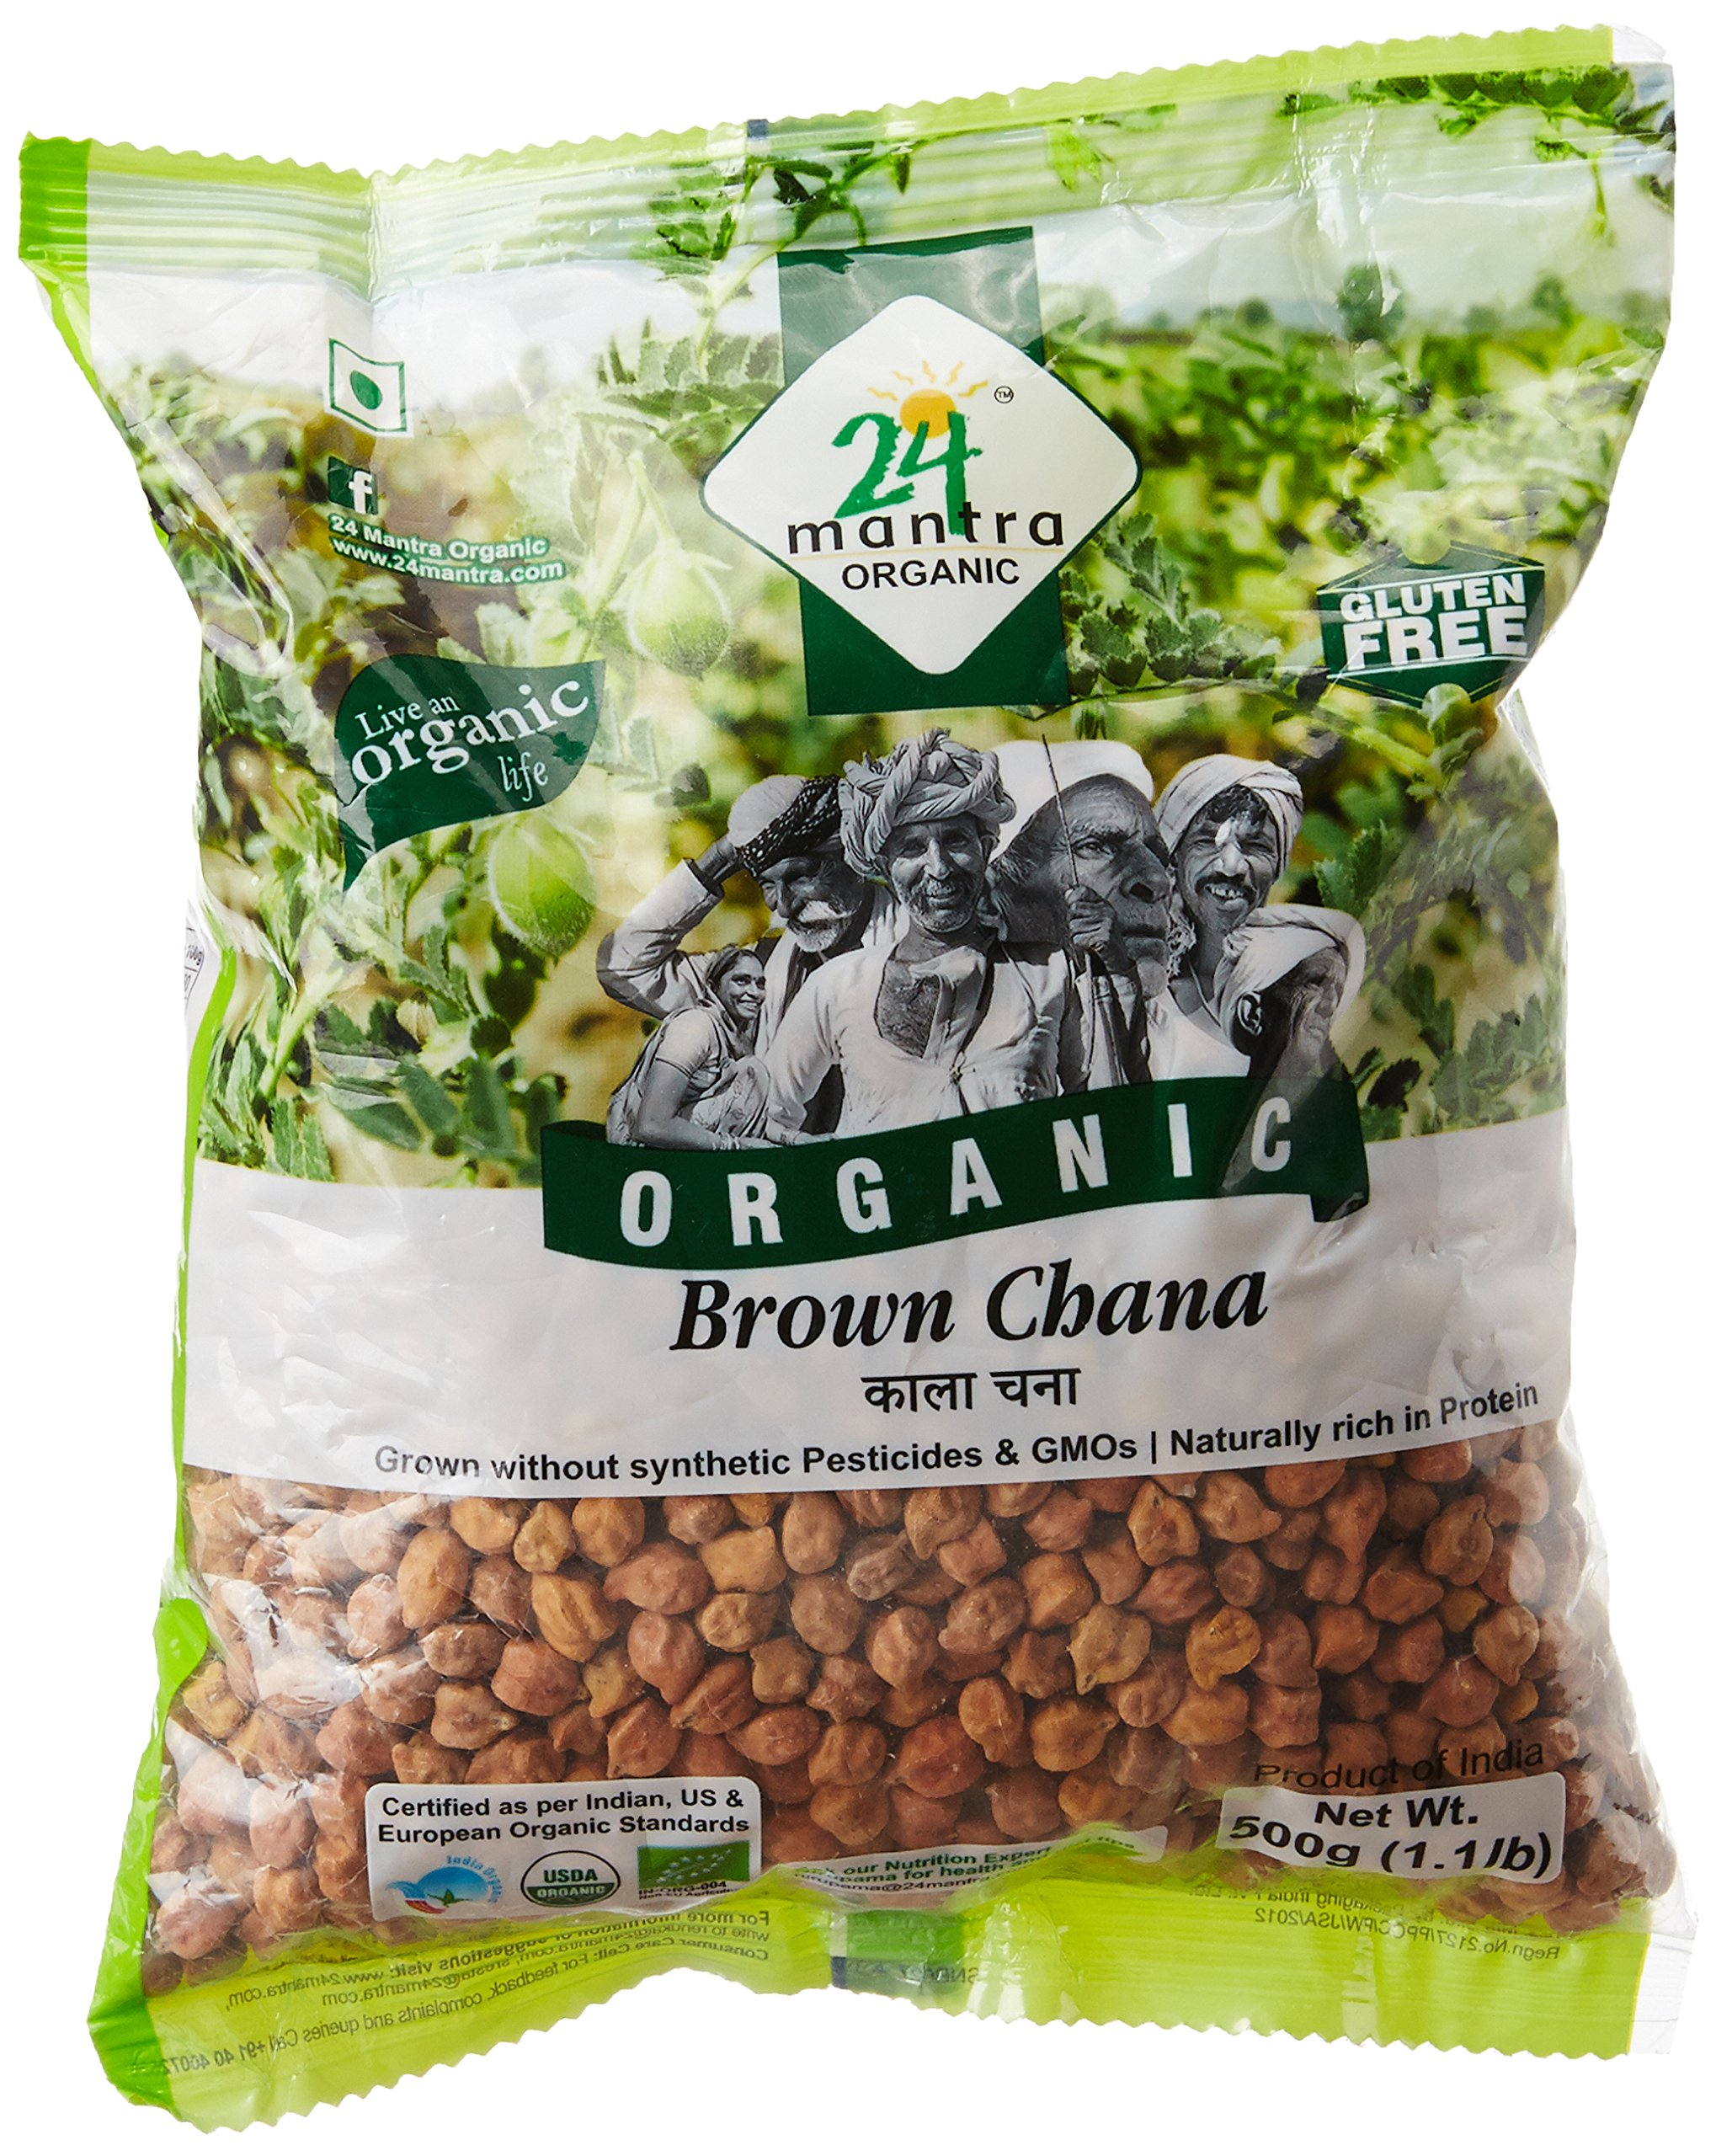 24 Mantra Organic Brown Chana Whole - 500g / 1.1 lb